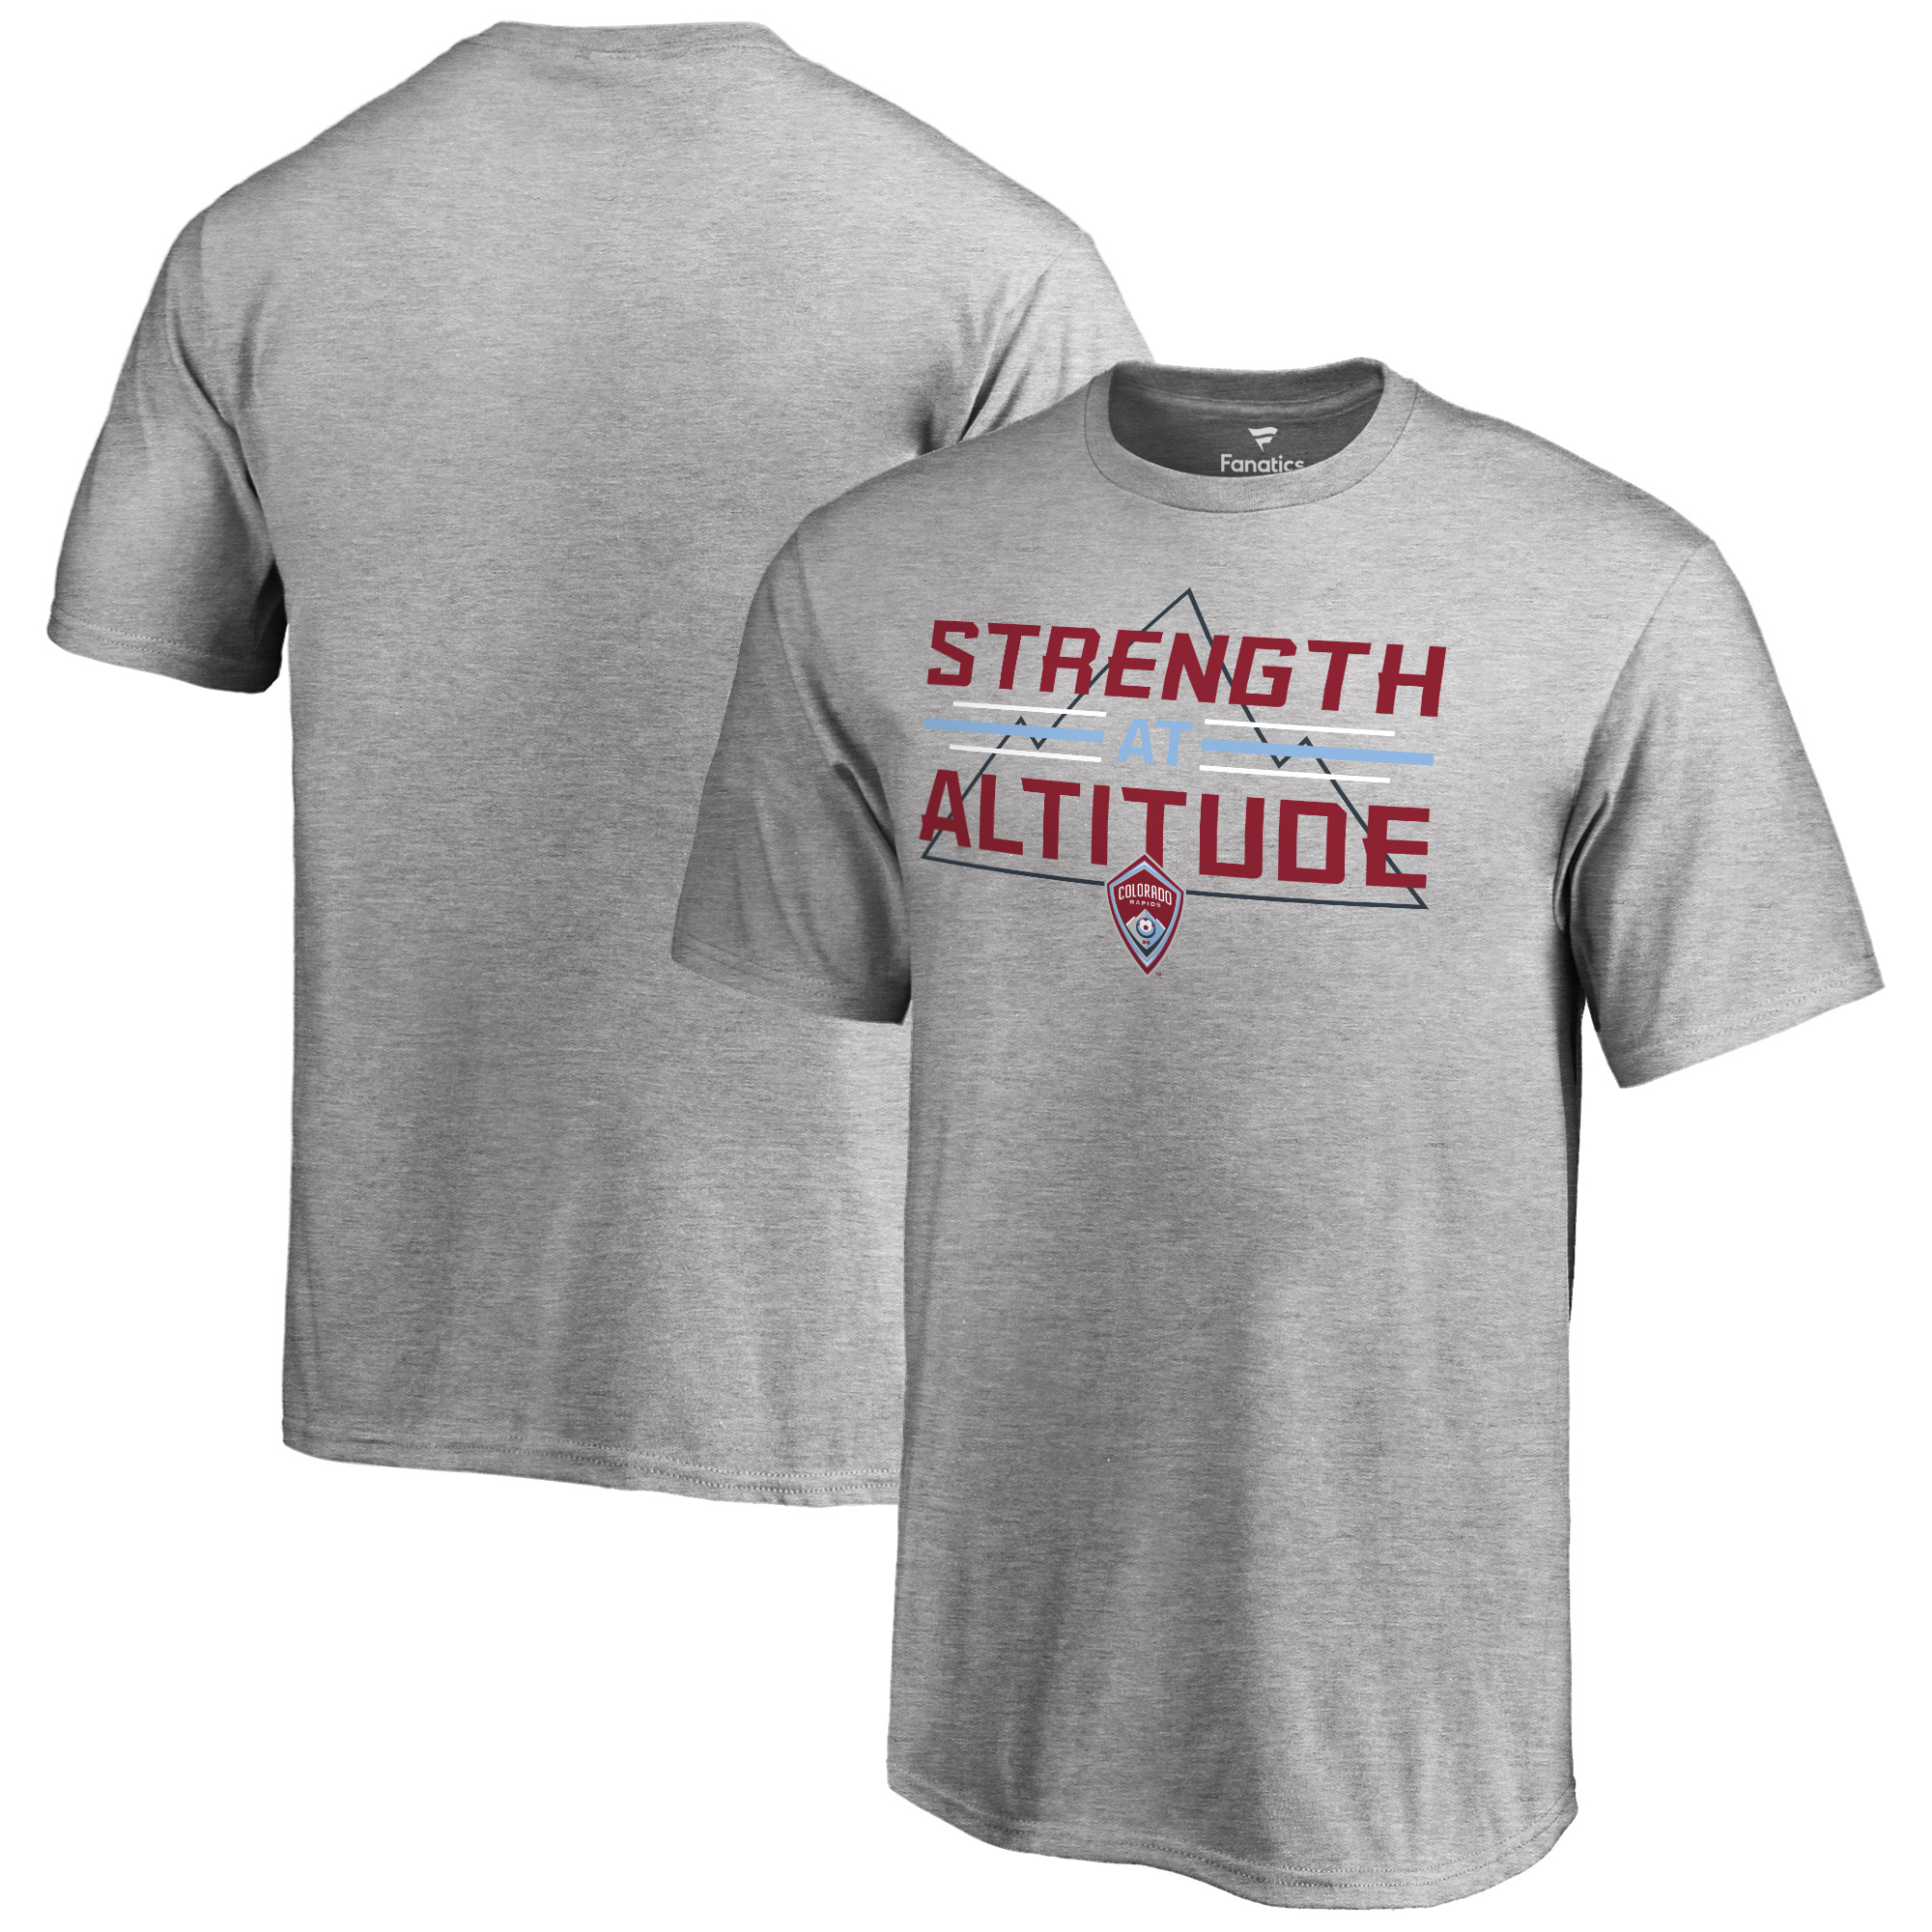 Colorado Rapids Youth Strength At Altitude T-Shirt - Heather Gray